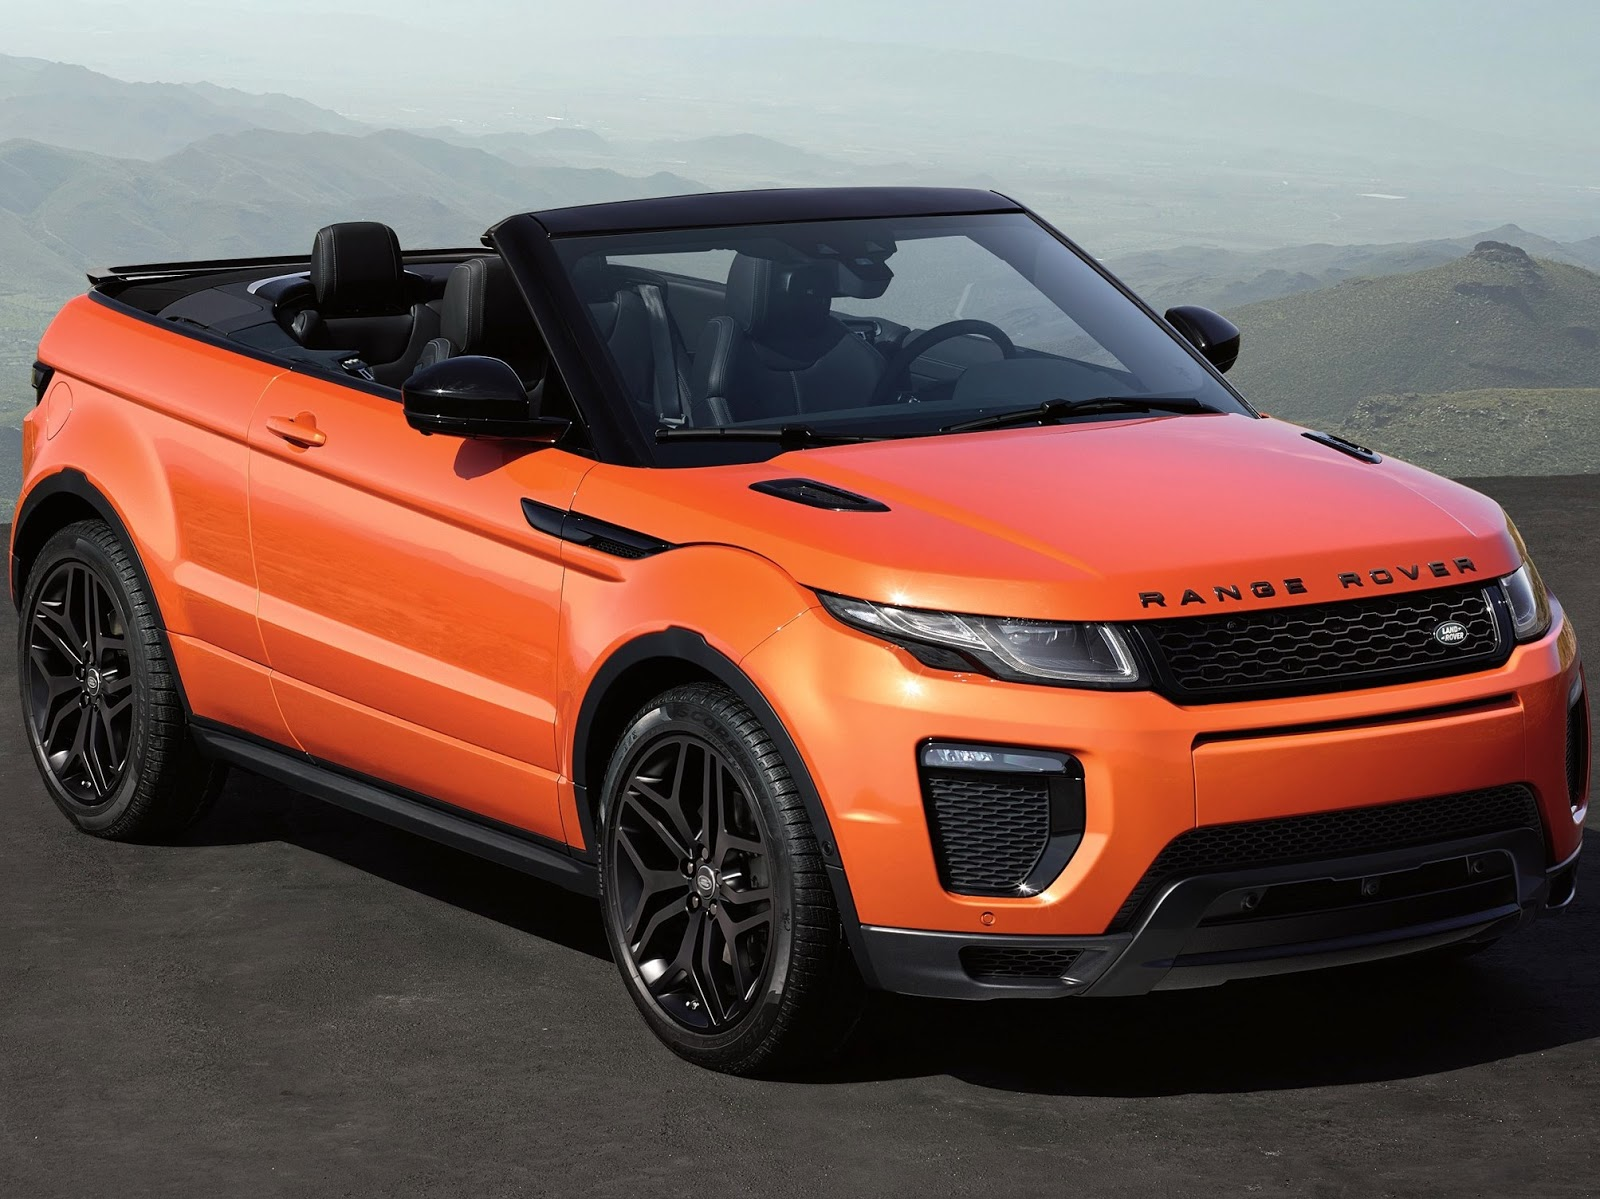 2 land rover range rover evoque convertible a blend of off road abilities and open sky. Black Bedroom Furniture Sets. Home Design Ideas